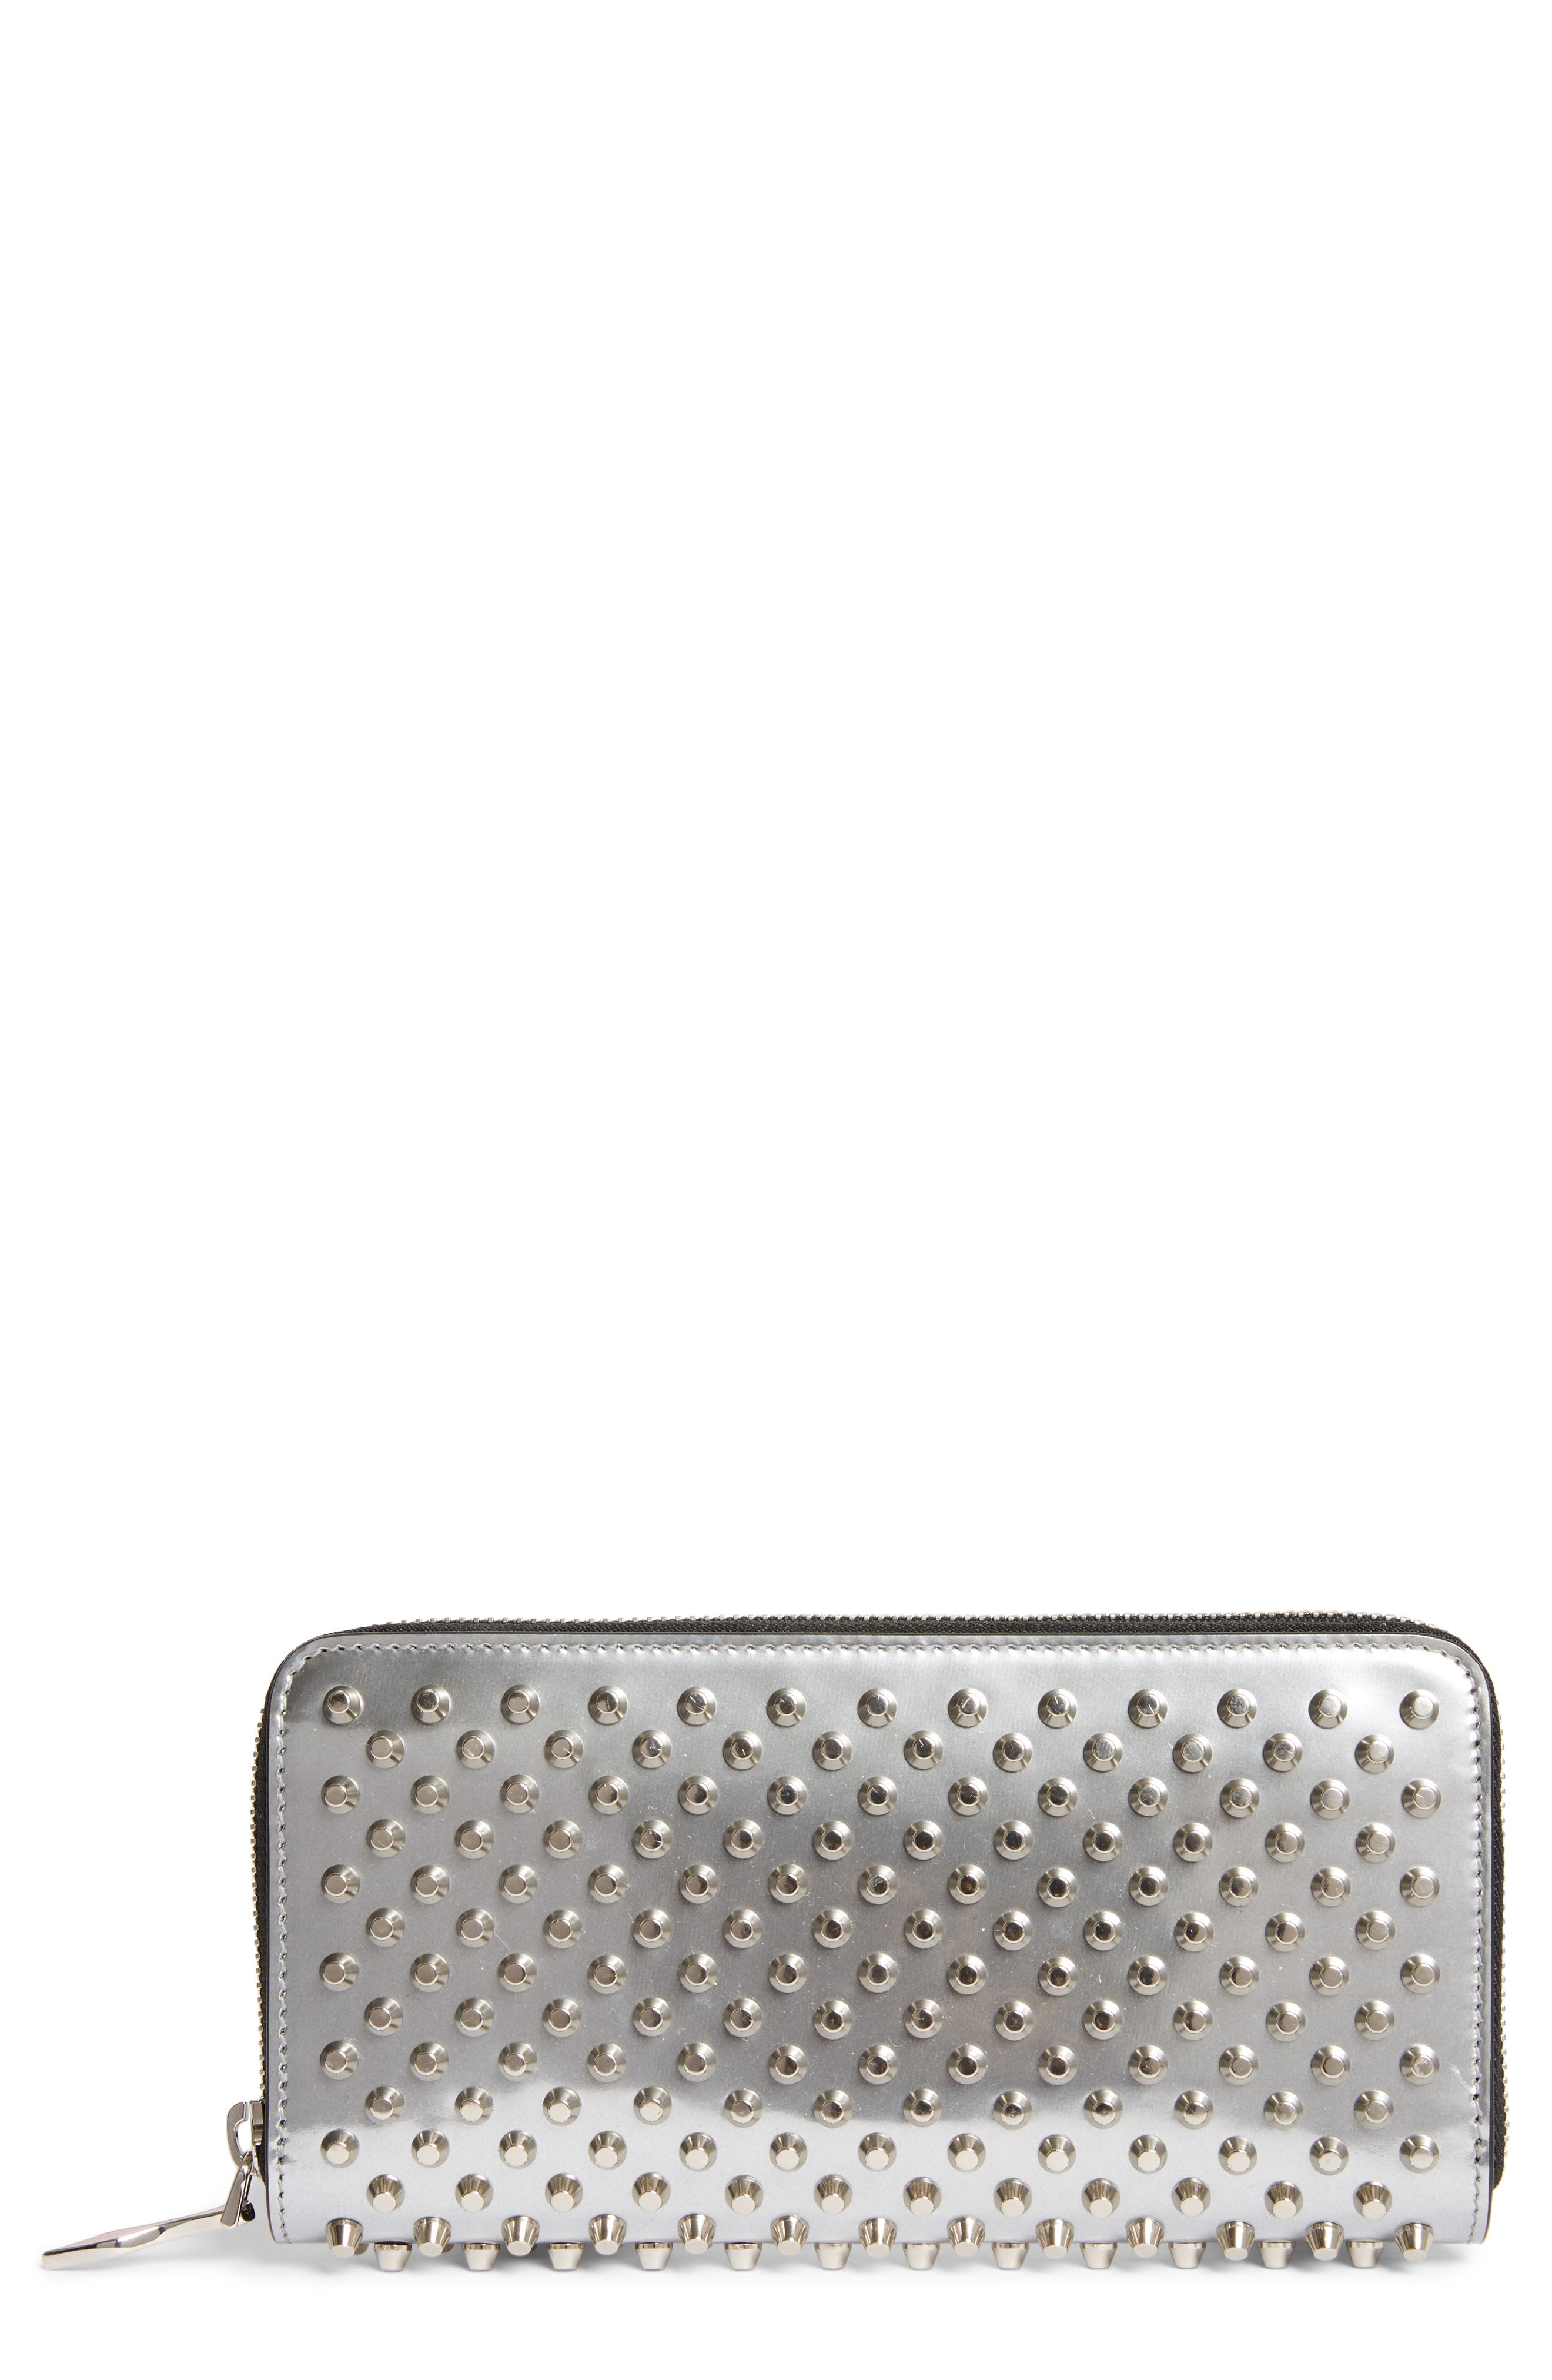 Panettone Spiked Metallic Leather Wallet,                         Main,                         color, Silver/ Silver